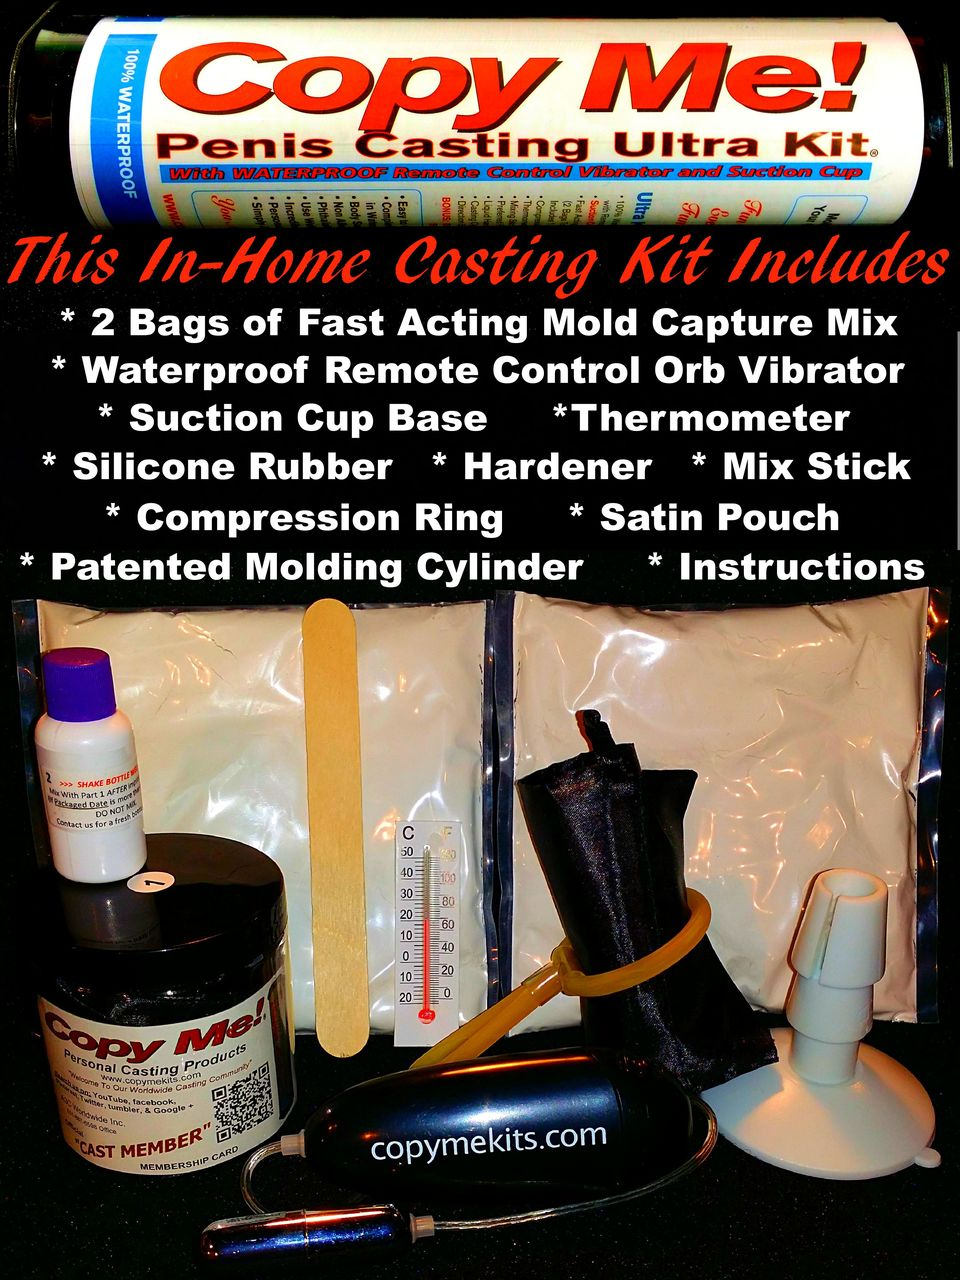 Here are the included parts inside the tube of THE BEST RATED PENIS CASTING KIT worldwide. Copy Me! Personal Casting Products deliver everything you are looking for when making a copy of your penis.